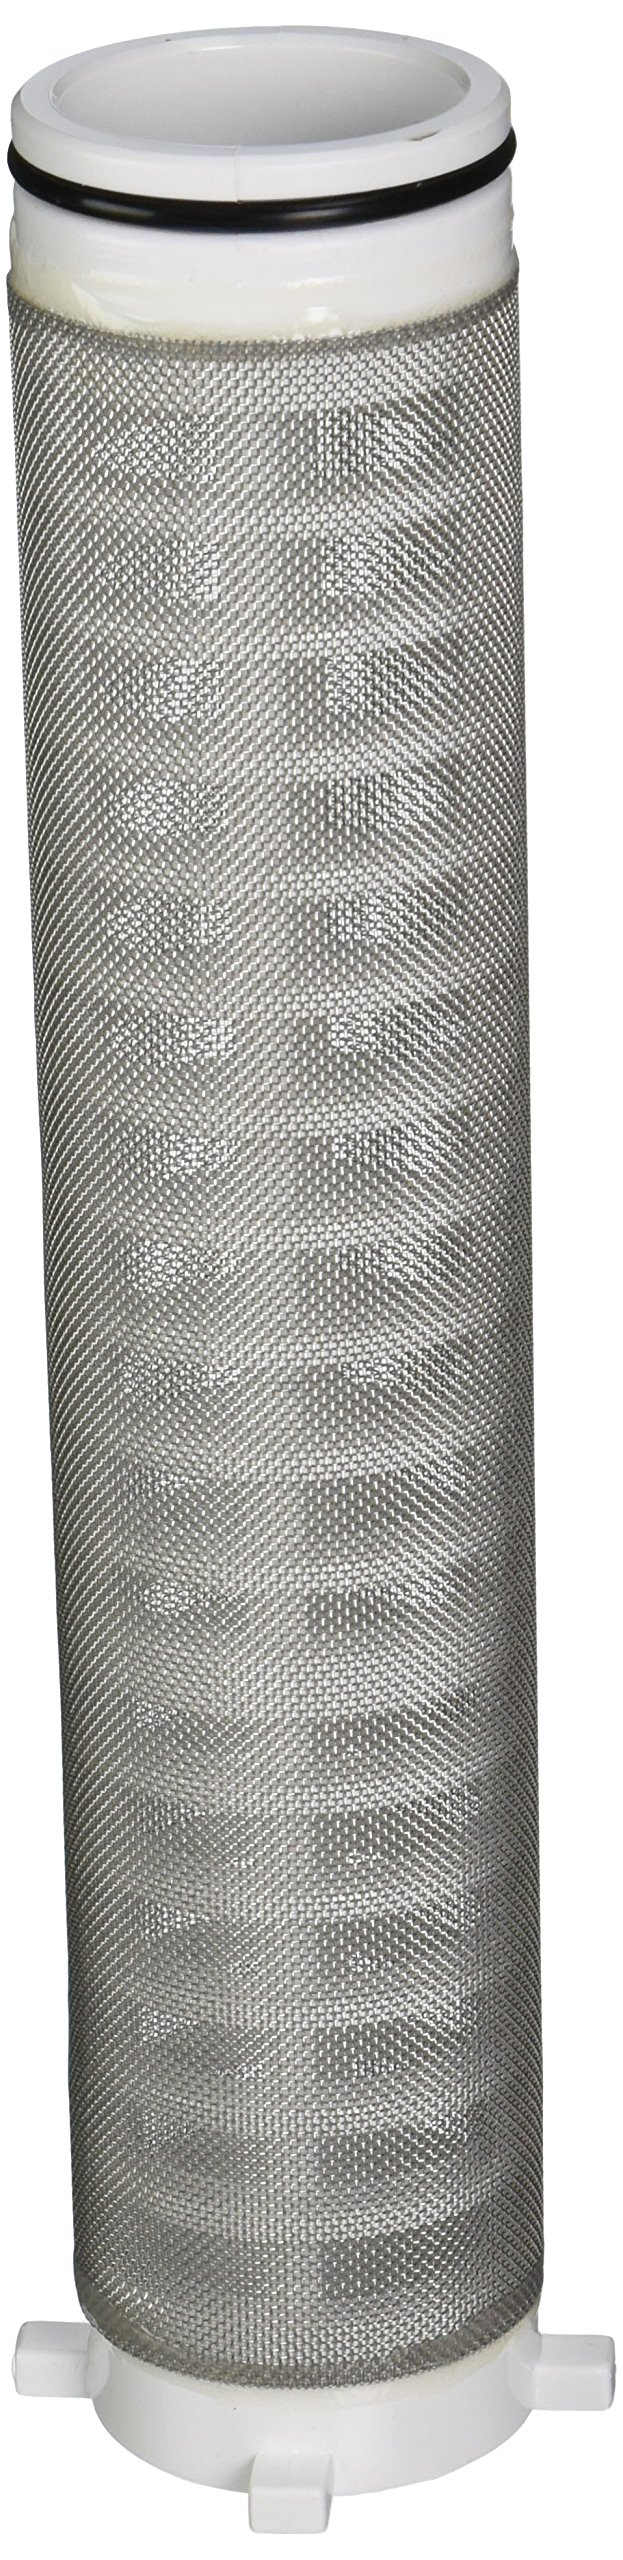 Rusco FS-2-30SS Spin-Down Steel Replacement Filter